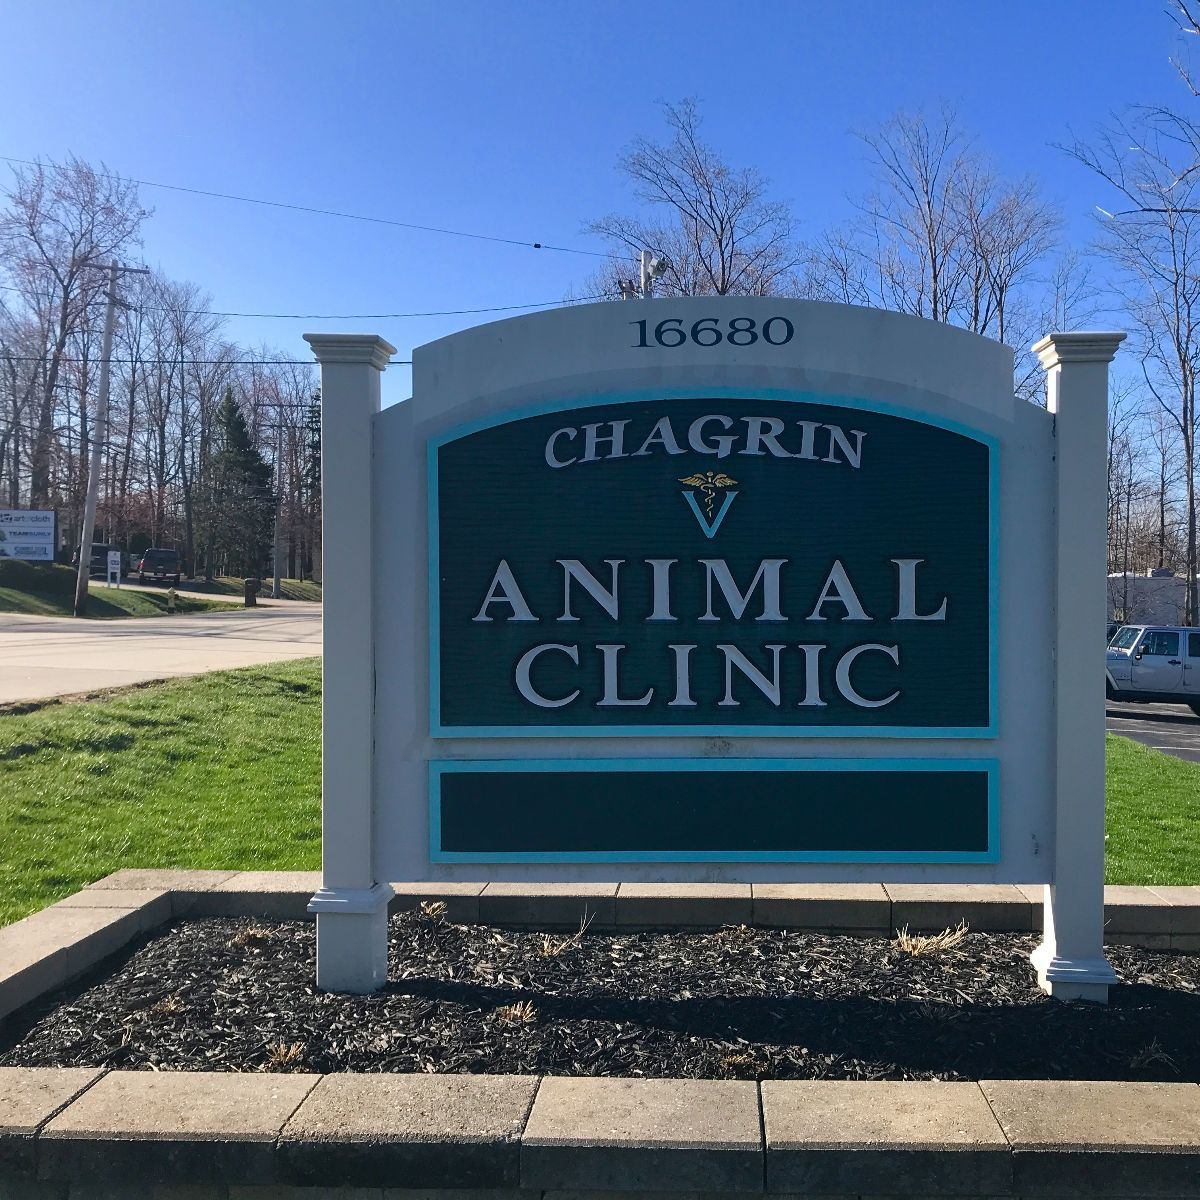 Chagrin Animal Clinic